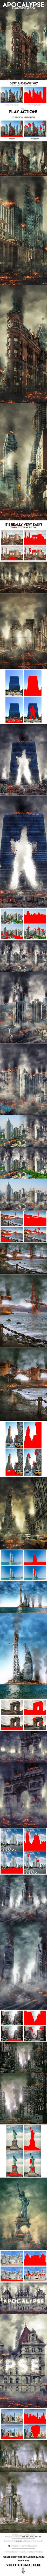 Apocalypse Photoshop Action - Photo Effects Actions